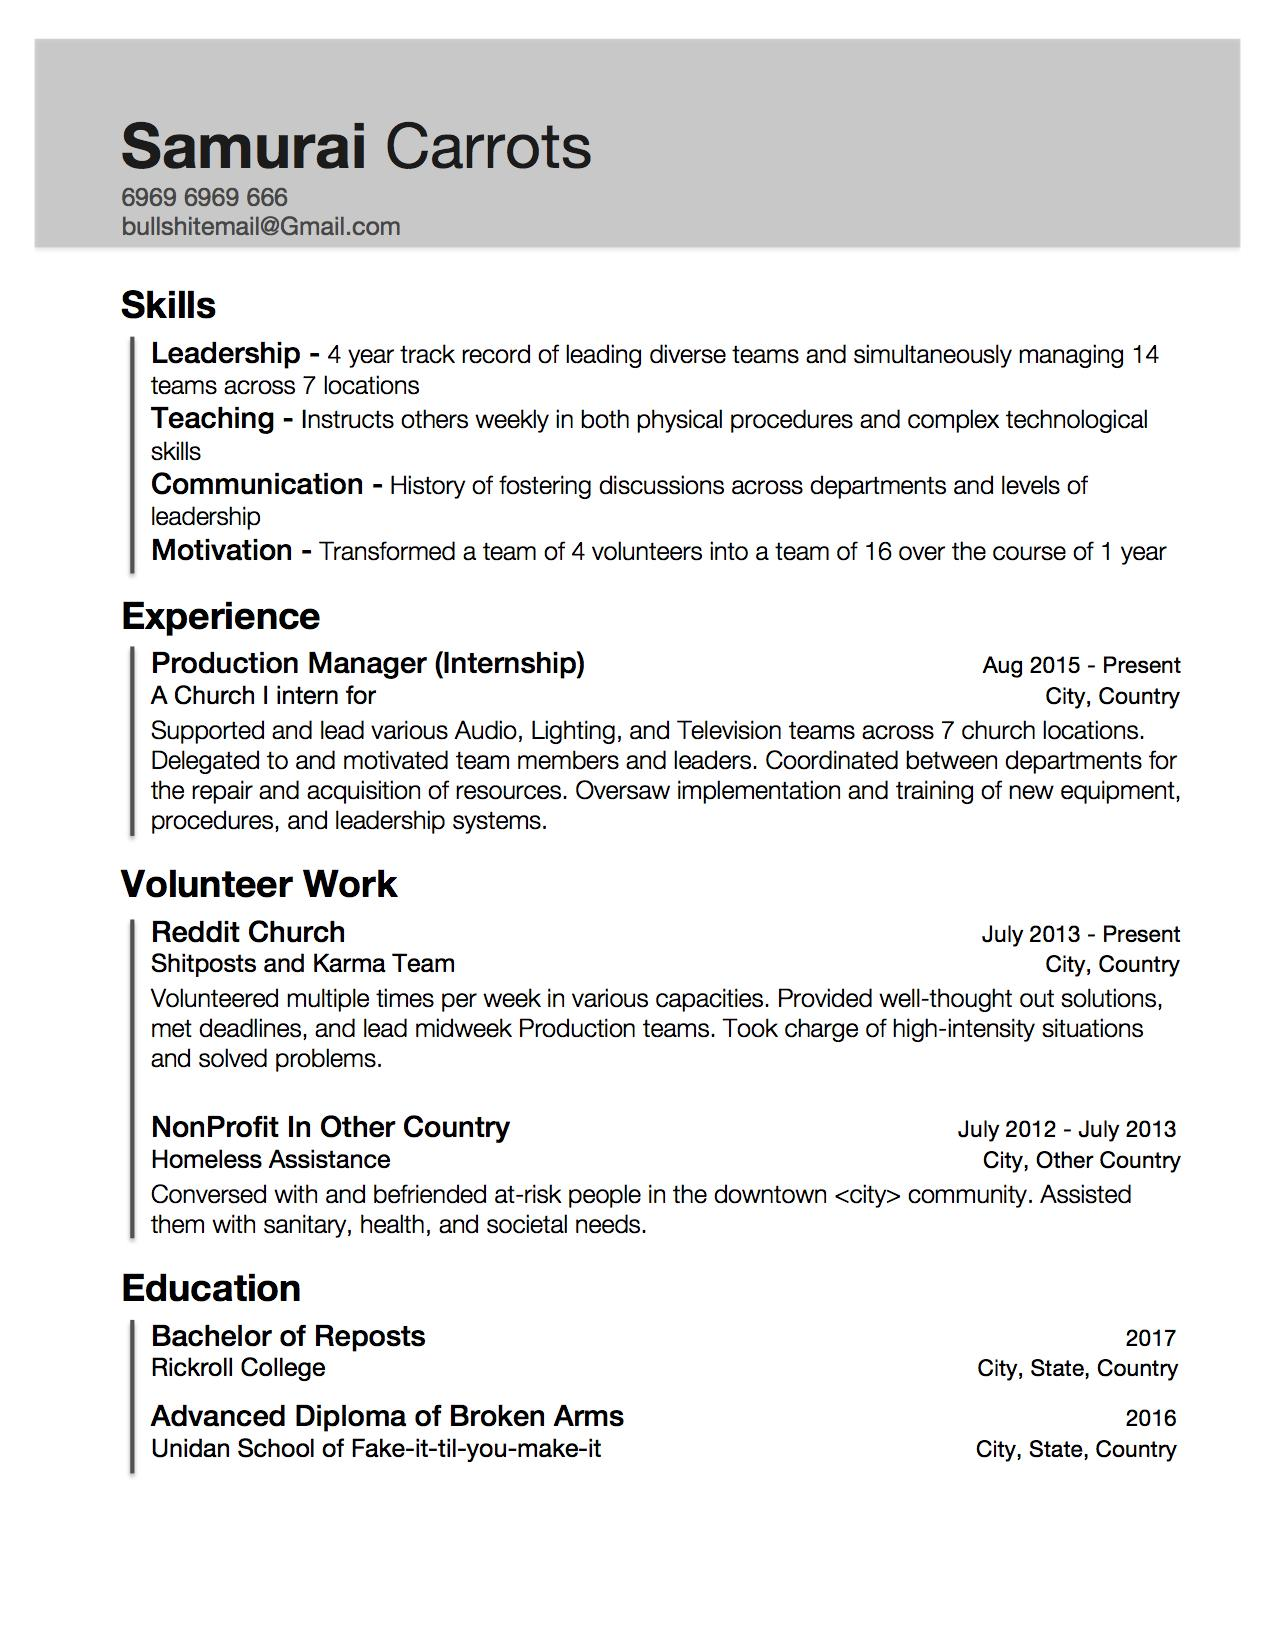 example of a resume for someone with little experience